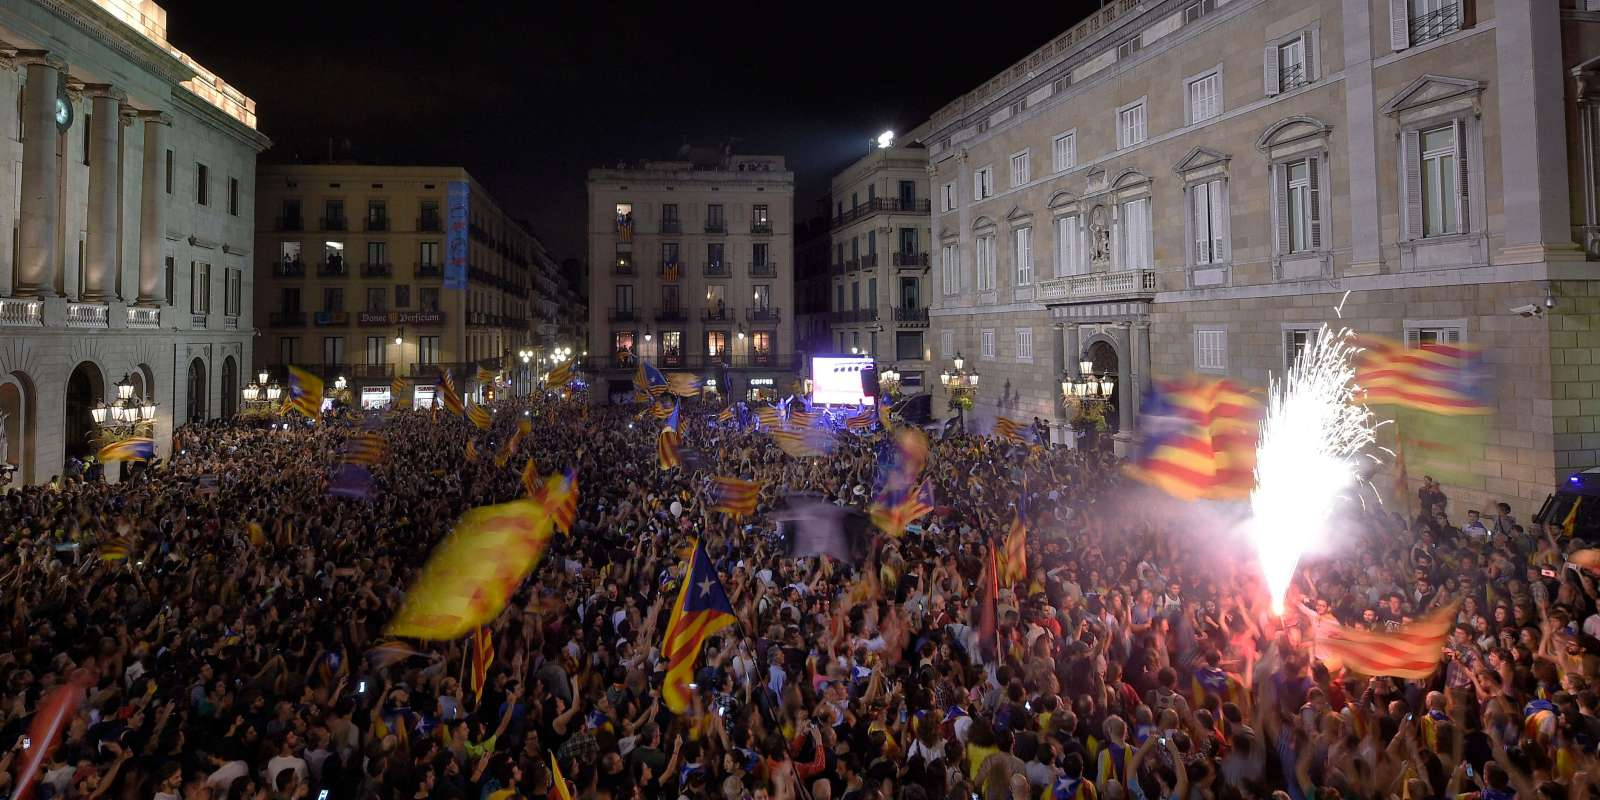 People gather in front of the 'Generalitat' palace (Catalan government headquarters) at the Sant Jaume square to celebrate the proclamation of a Catalan republic in Barcelona on October 27, 2017. Catalonia's parliament voted to declare independence from Spain and proclaim a republic, just as Madrid is poised to impose direct rule on the region to stop it in its tracks. A motion declaring independence was approved with 70 votes in favour, 10 against and two abstentions, with Catalan opposition MPs walking out of the 135-seat chamber before the vote in protest at a declaration unlikely to be given official recognition. / AFP / LLUIS GENE